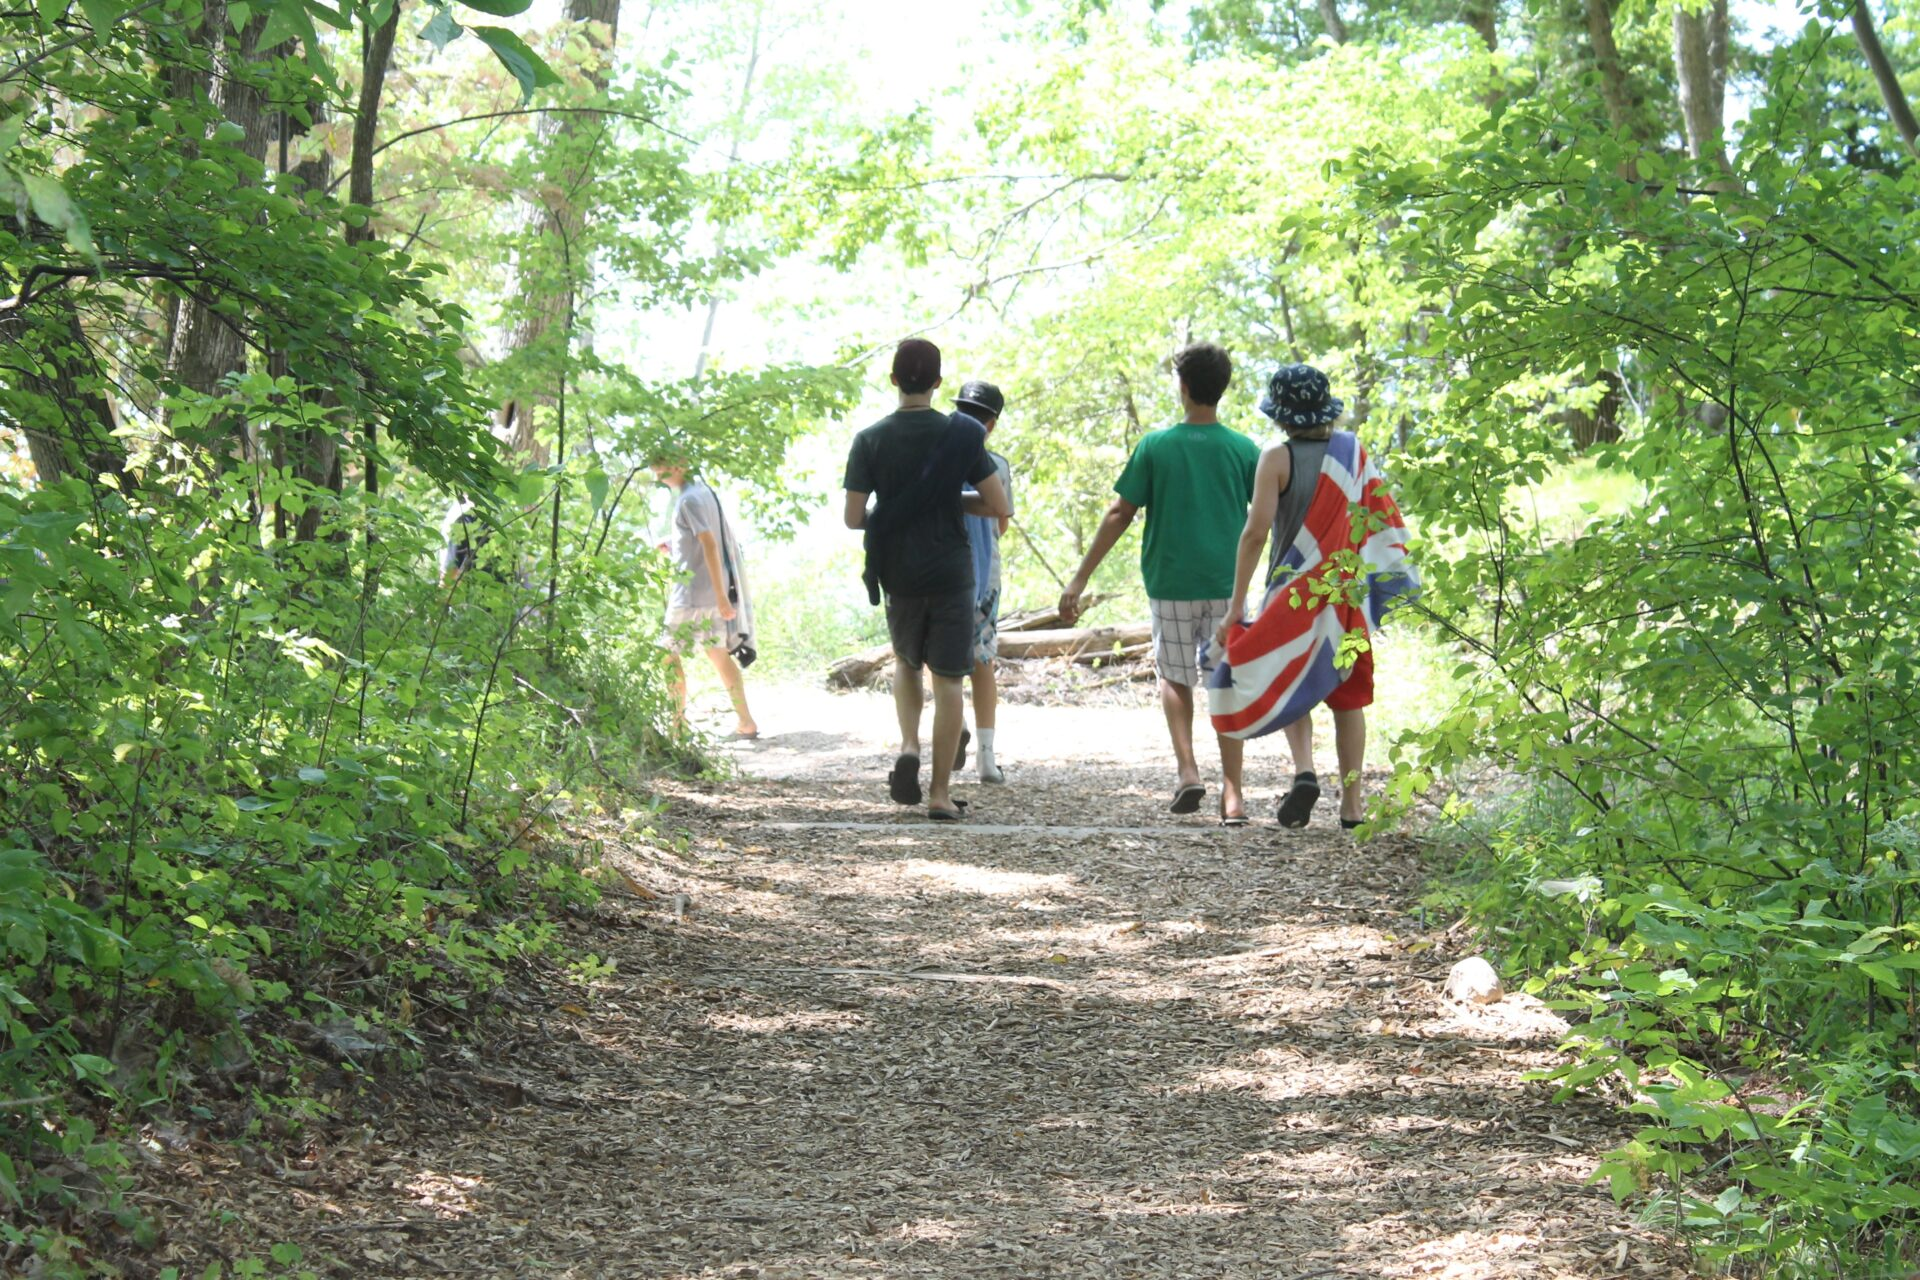 campers walking on a trail